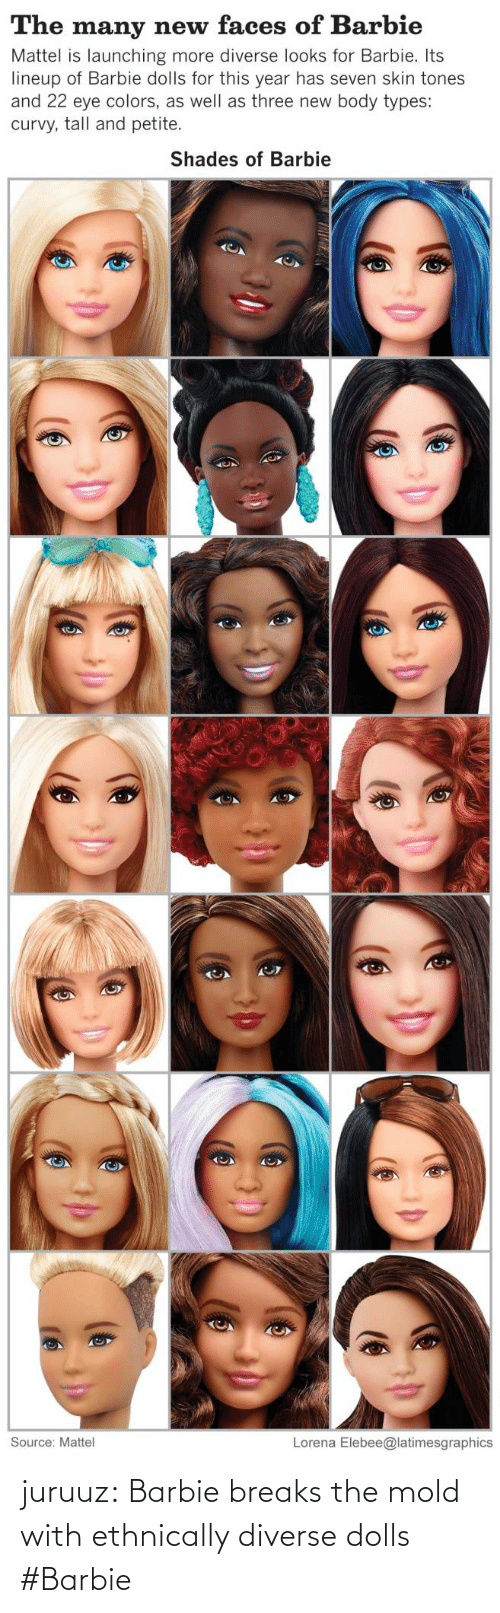 Barbie, Tumblr, and Blog: The many new faces of Barbie  Mattel is launching more diverse looks for Barbie. Its  lineup of Barbie dolls for this year has seven skin tones  and 22 eye colors, as well as three new body types:  curvy, tall and petite.  Shades of Barbie  Lorena Elebee@latimesgraphics  Source: Mattel juruuz:  Barbie breaks the mold with ethnically diverse dolls #Barbie